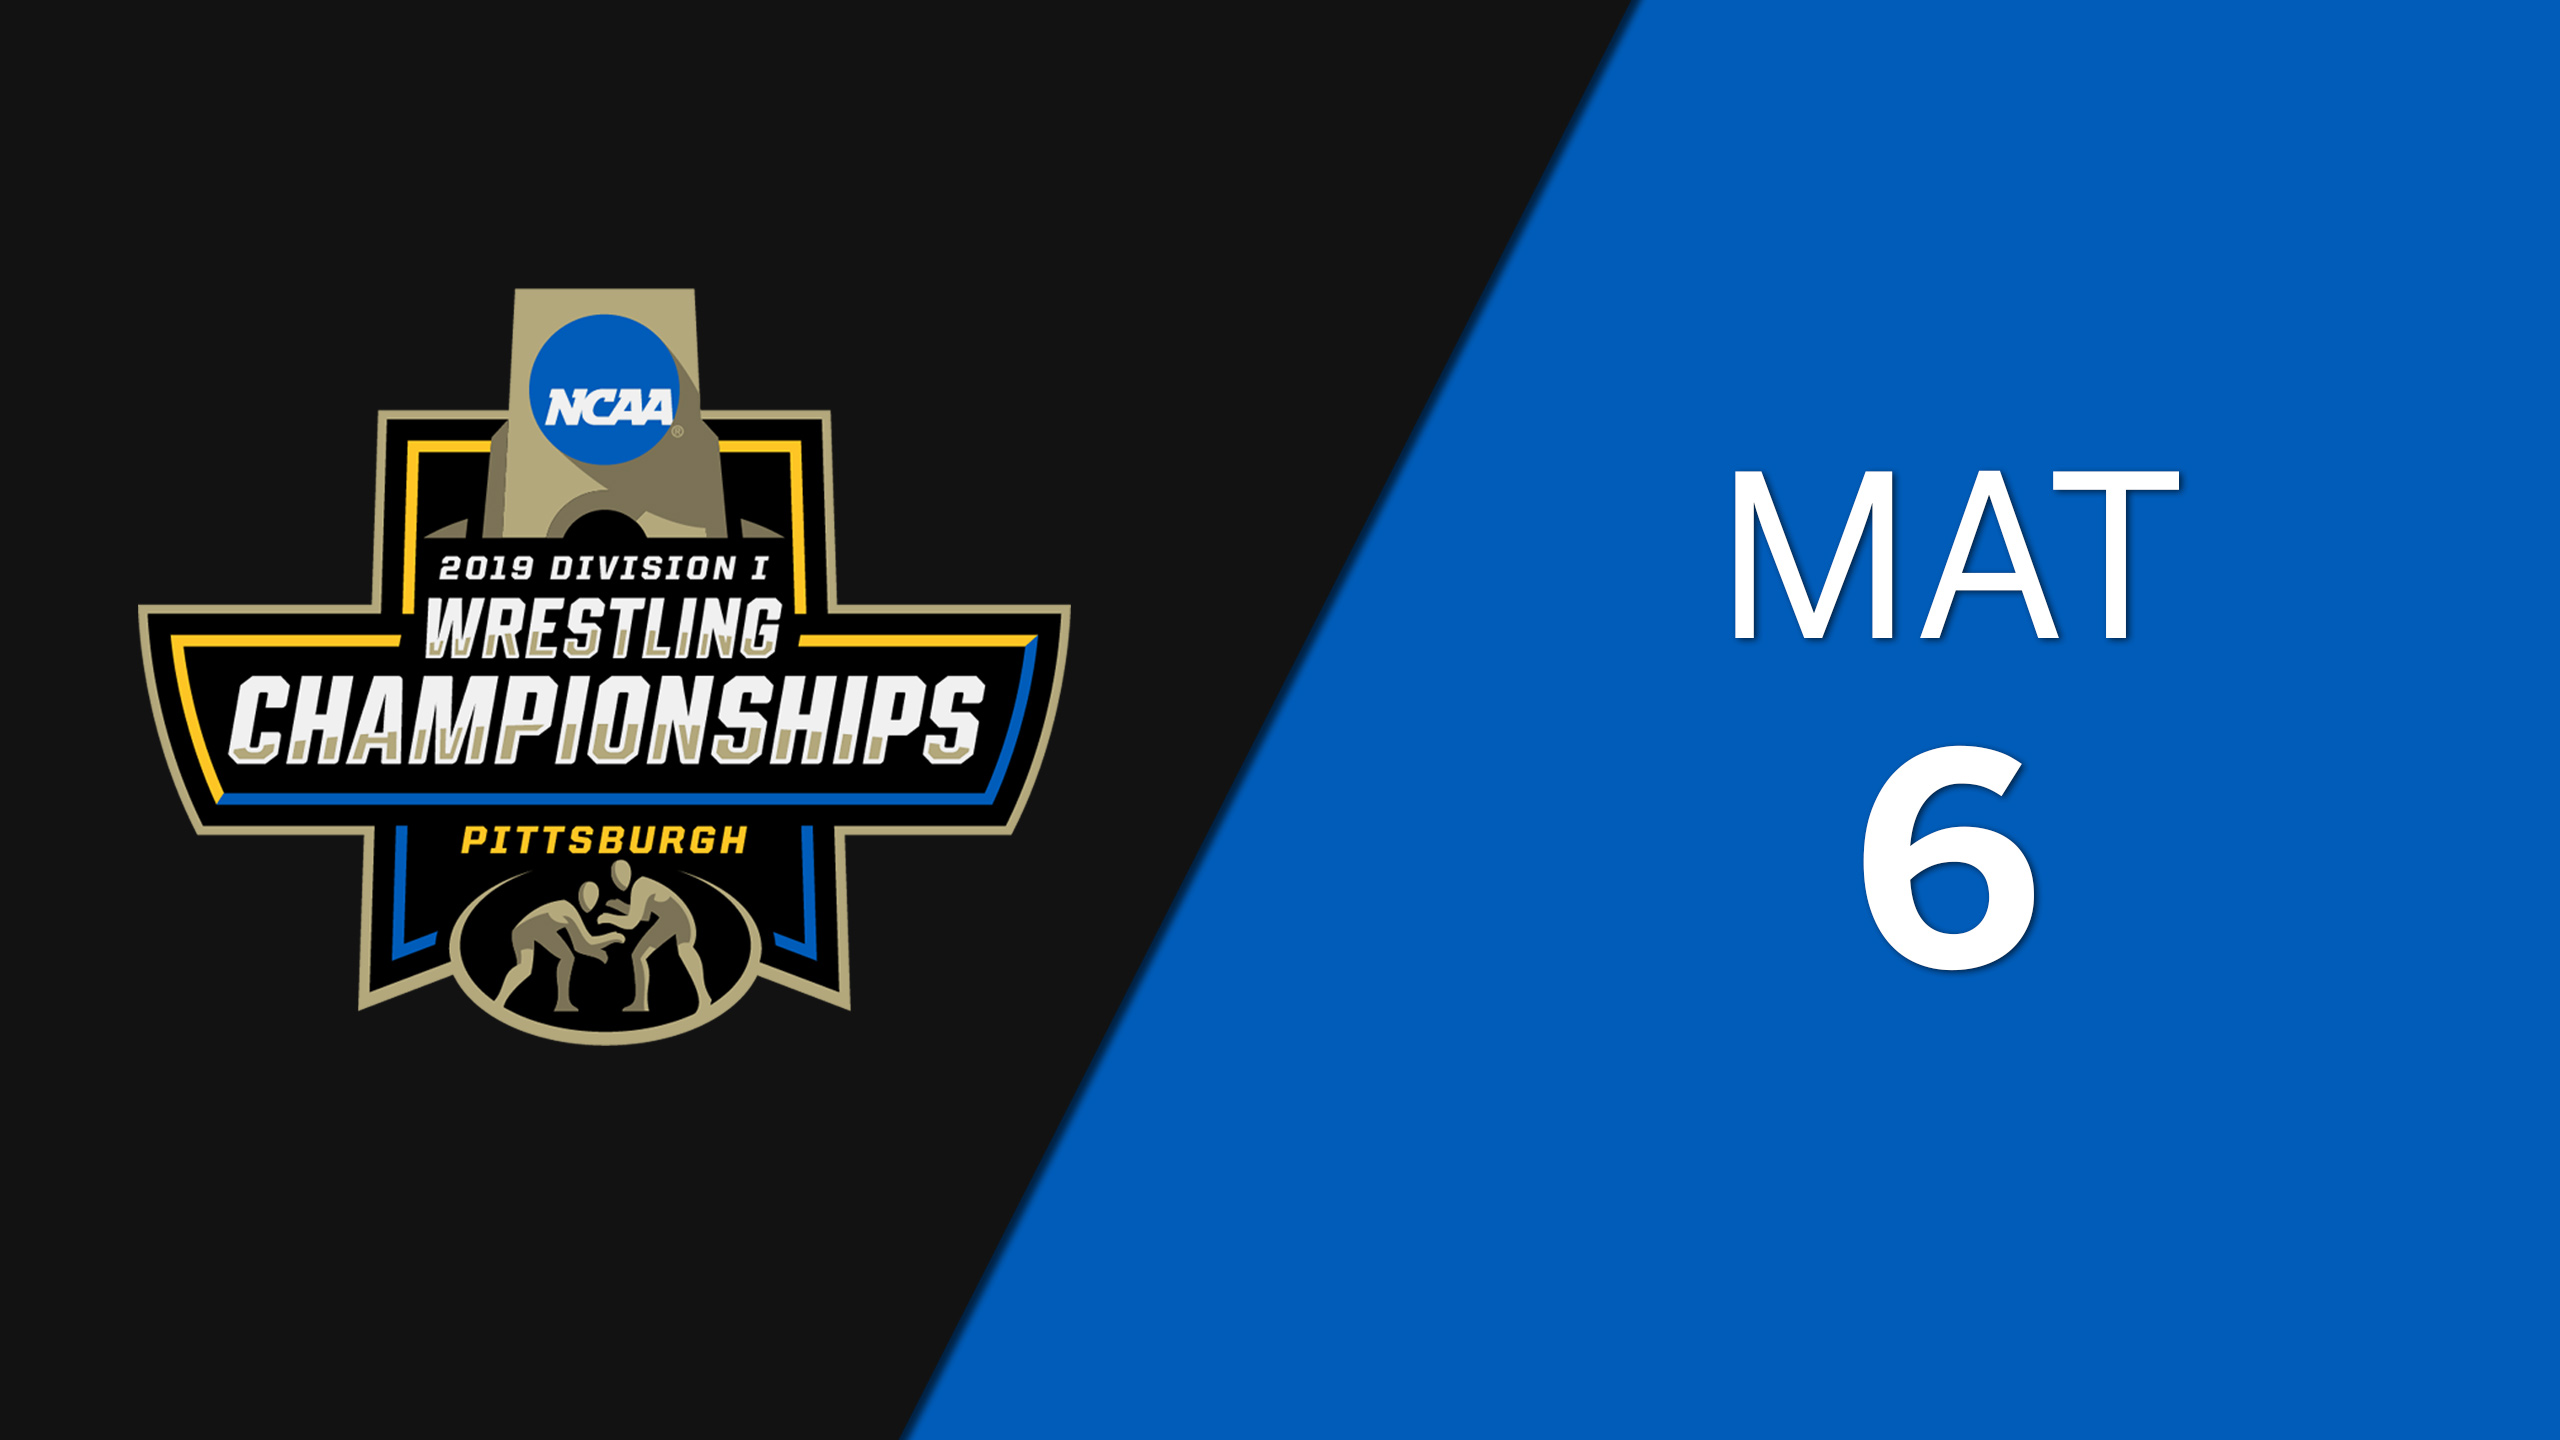 NCAA Wrestling Championship (Mat 6, Second Round)